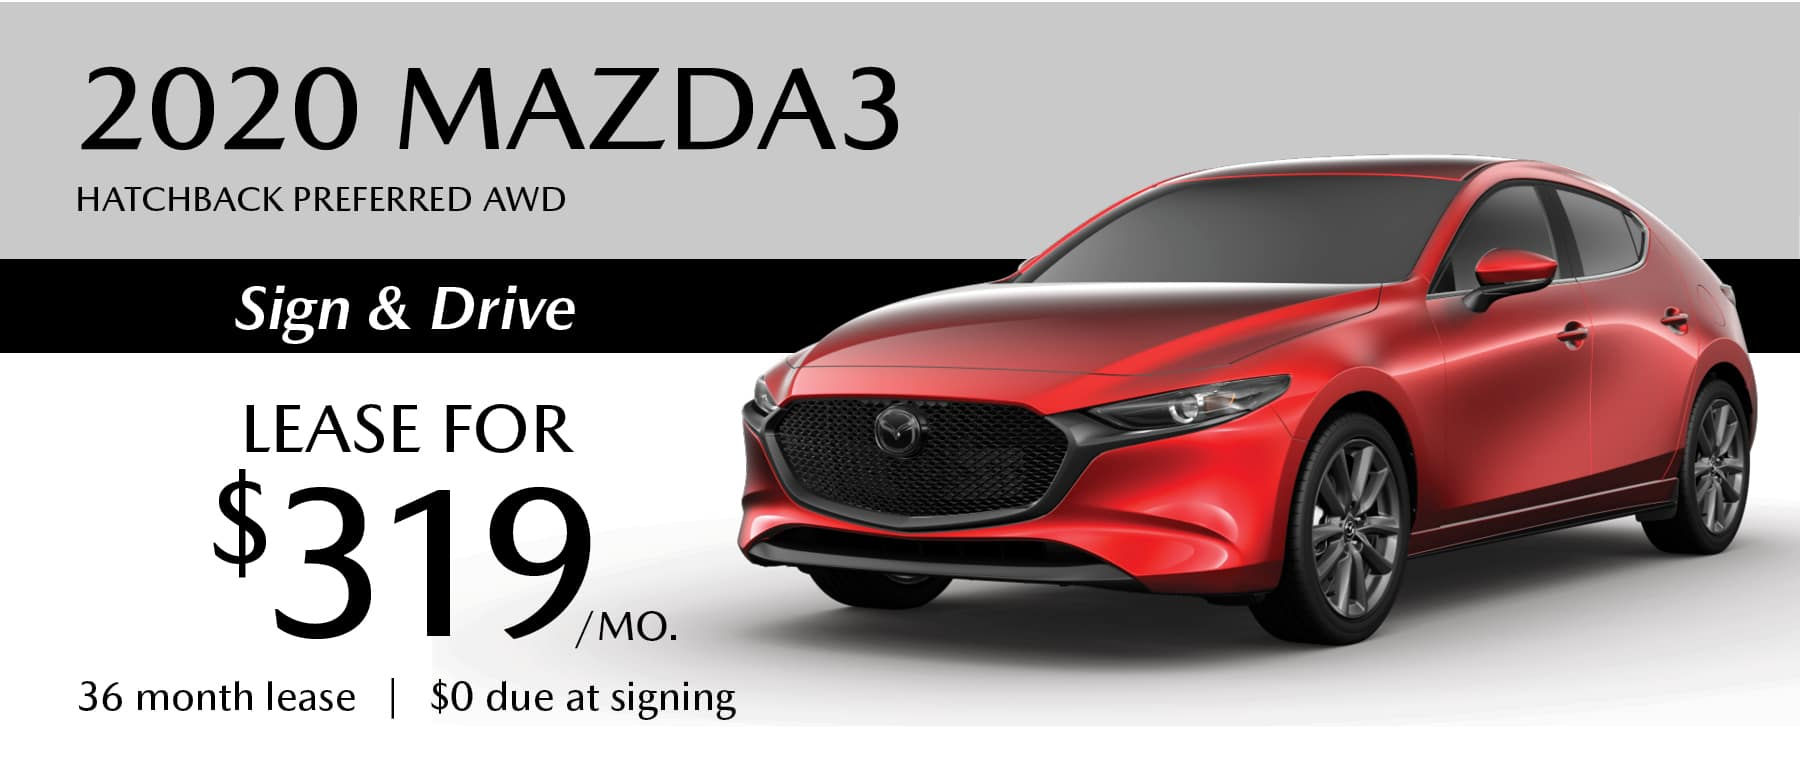 2020 Mazda3 Hatchback Preferred AWD Sign and Drive Lease Offer with Zero due at Signing